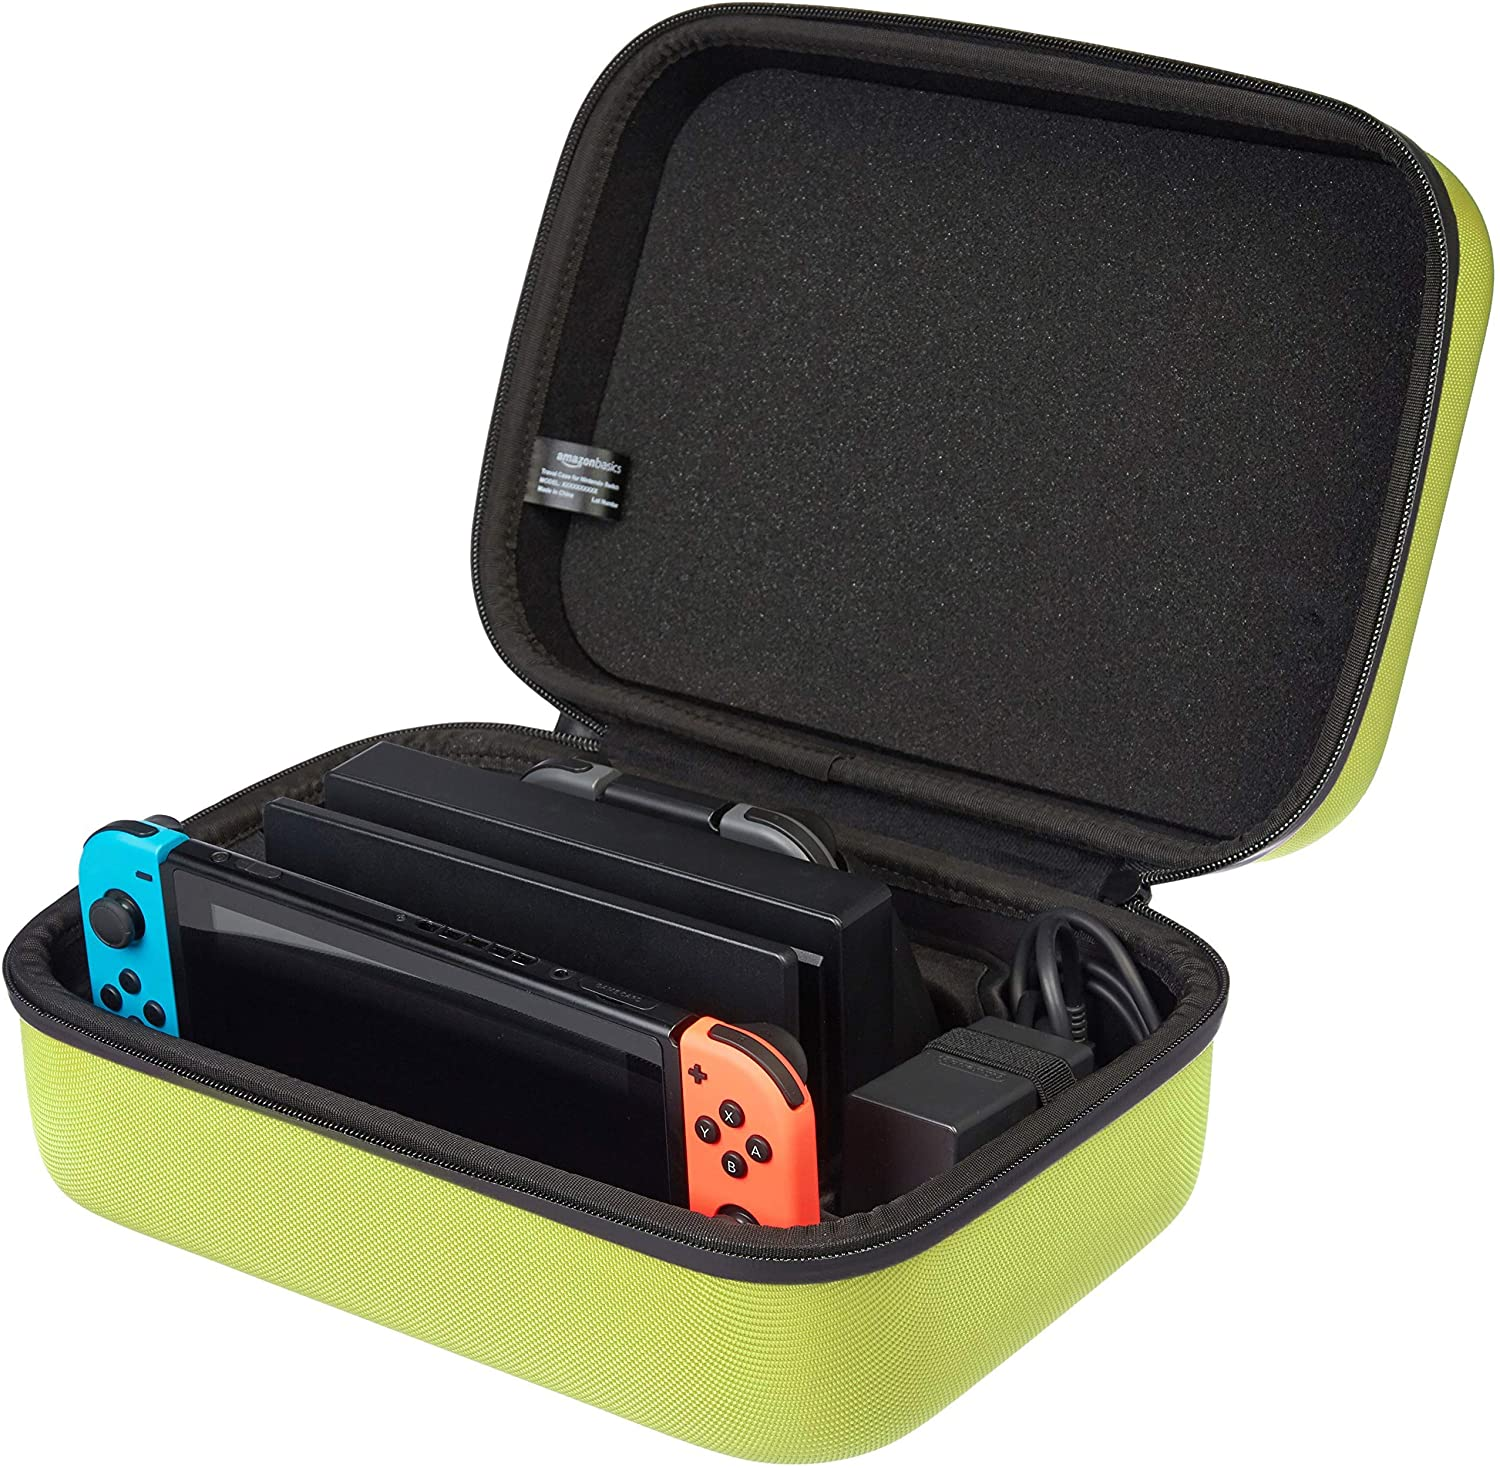 Basics Hard Shell Travel and Storage Case for Nintendo Switch - 12 x 4.8 x 9 Inches, Neon Yellow: Video Games